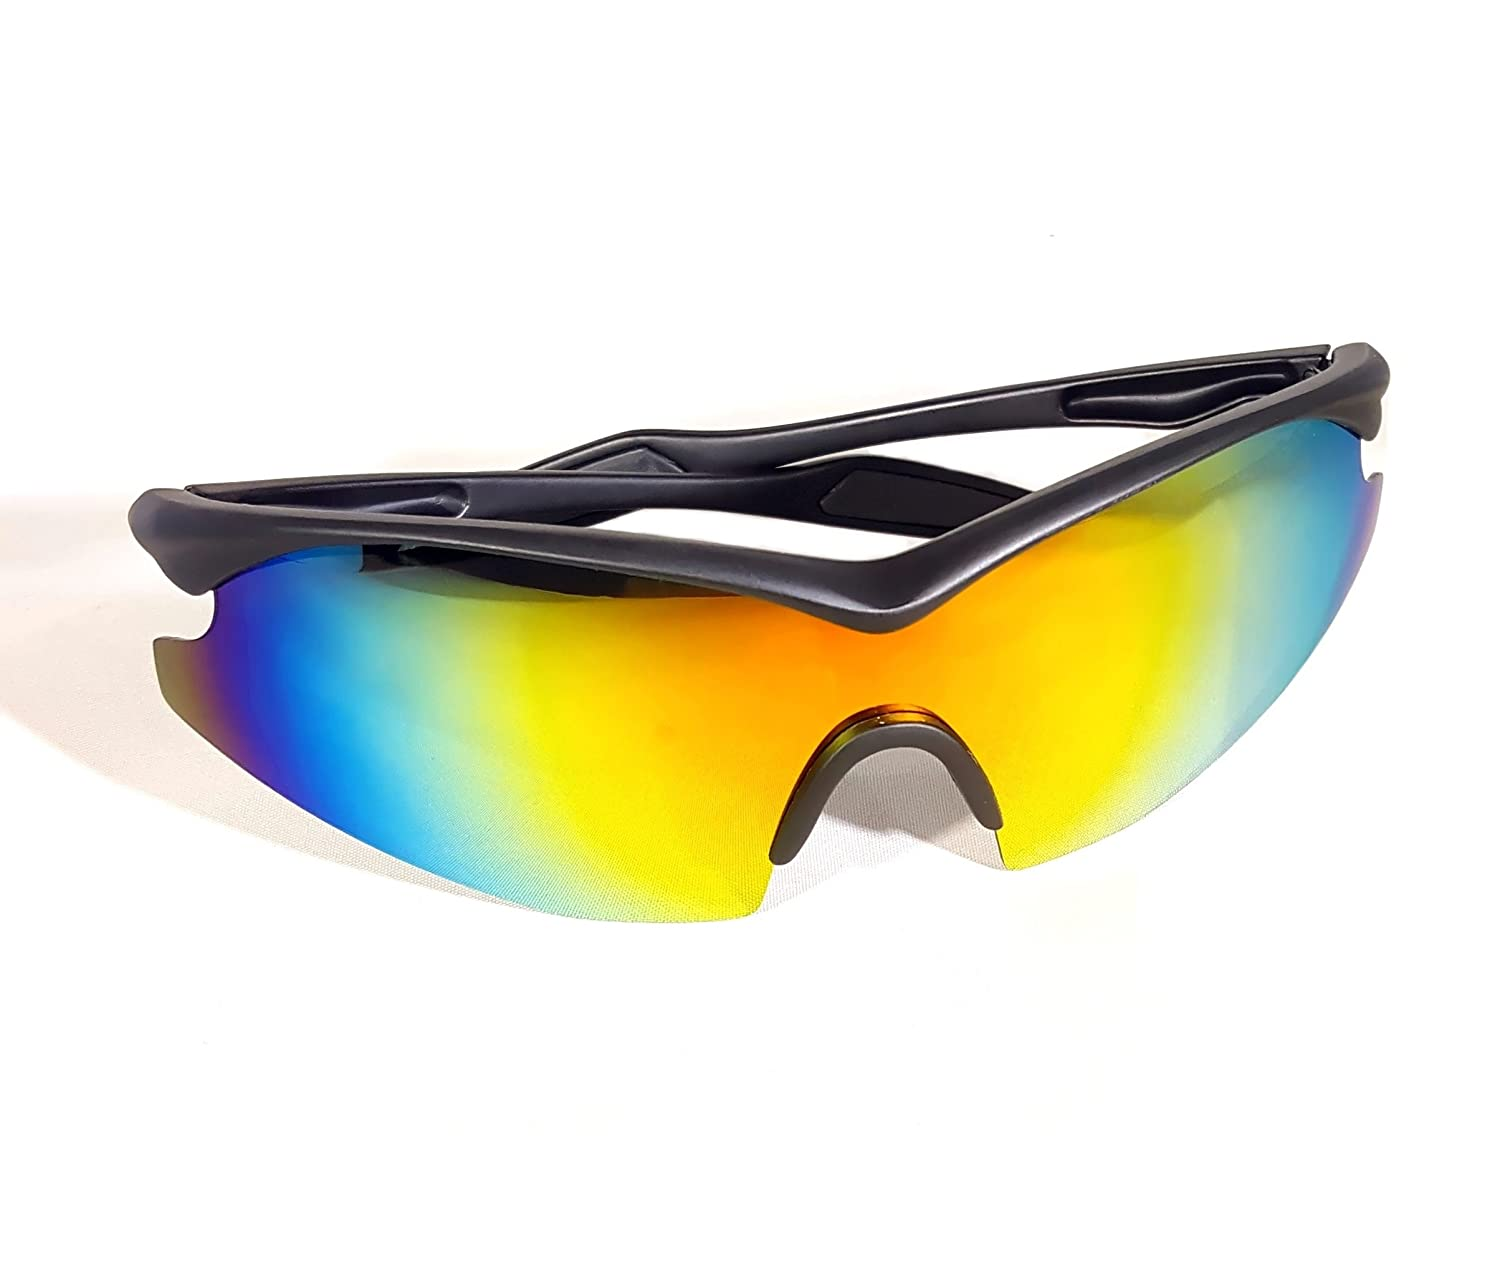 b244ca018 Amazon.com: Bell+Howell TACGLASSES One-Size-Fits-All Polarized Sports  Sunglasses for Men/Women, Unisex, Military Eyewear As Seen On TV: Home  Improvement